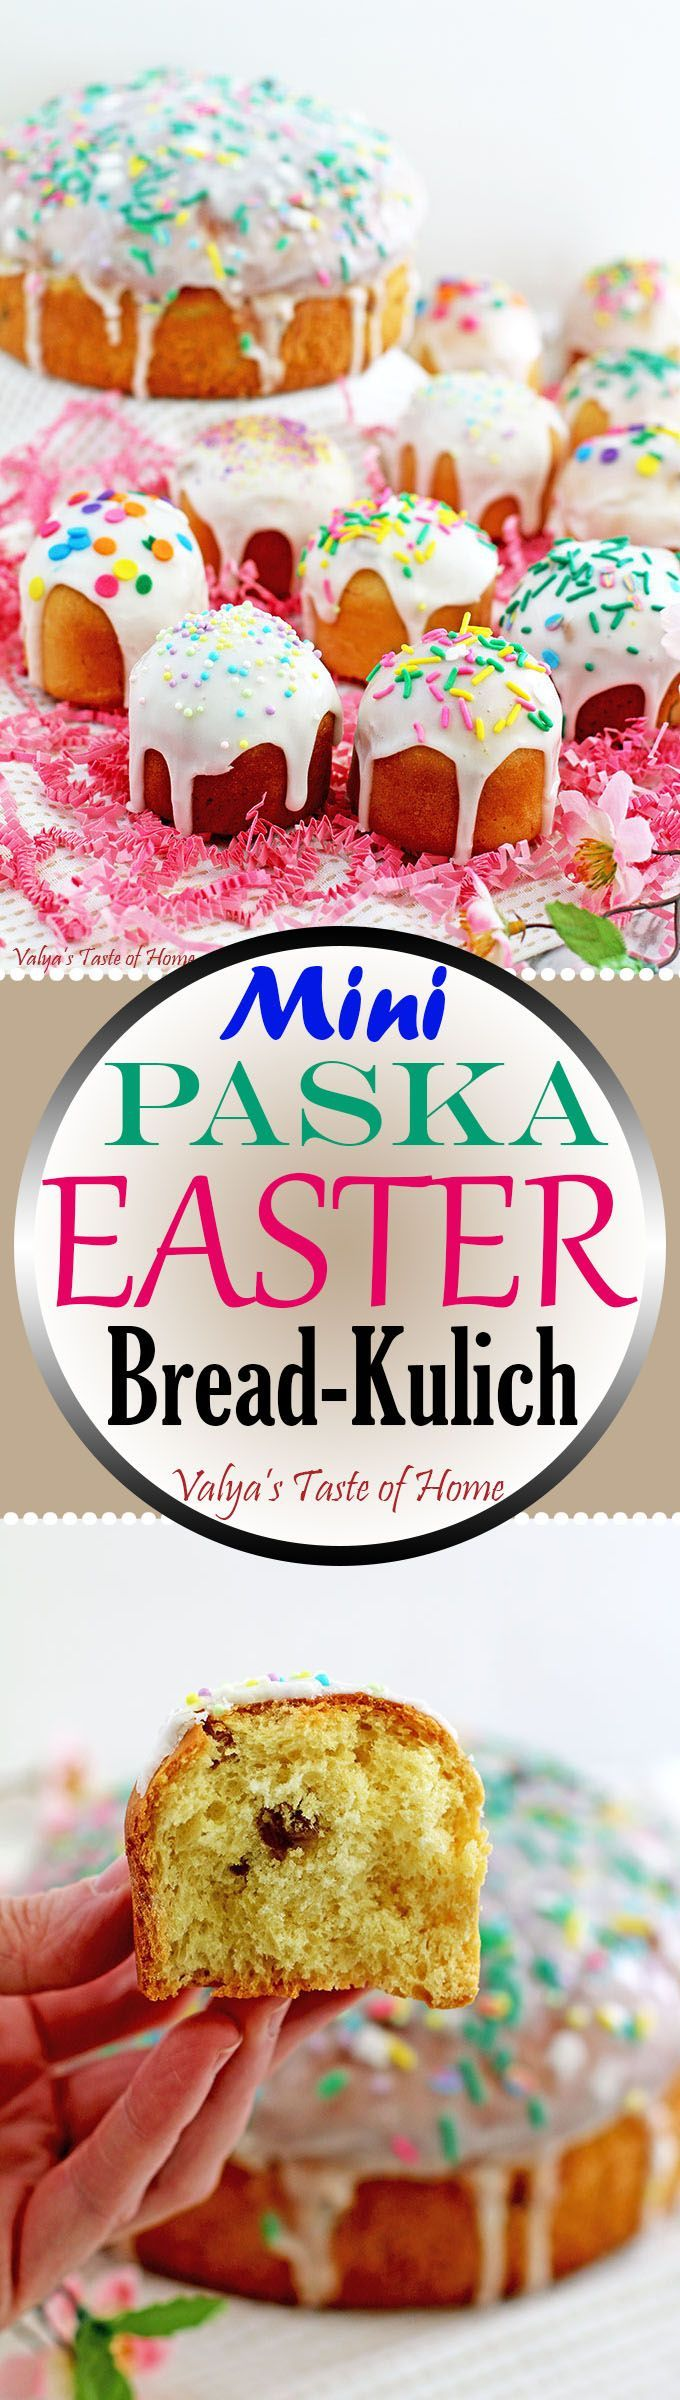 This Mini Paska Easter Bread Recipe makes the bread pillow soft. Small cupcake size Paska Bread is easy to hold and a perfect serving size for little ones and so adorable. They are the cutest little things! Plus, they make a perfect addition to baked-goods gift baskets, if you like giving away those.